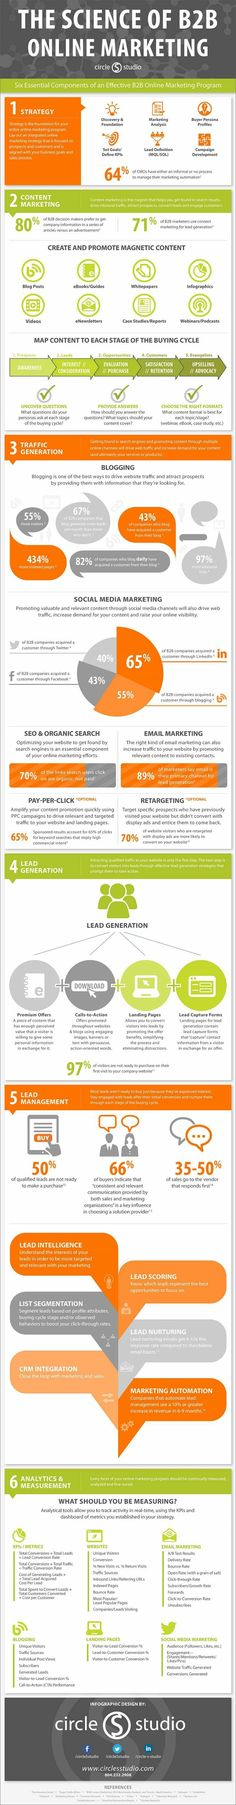 The science of B2B #online #marketing #infographic